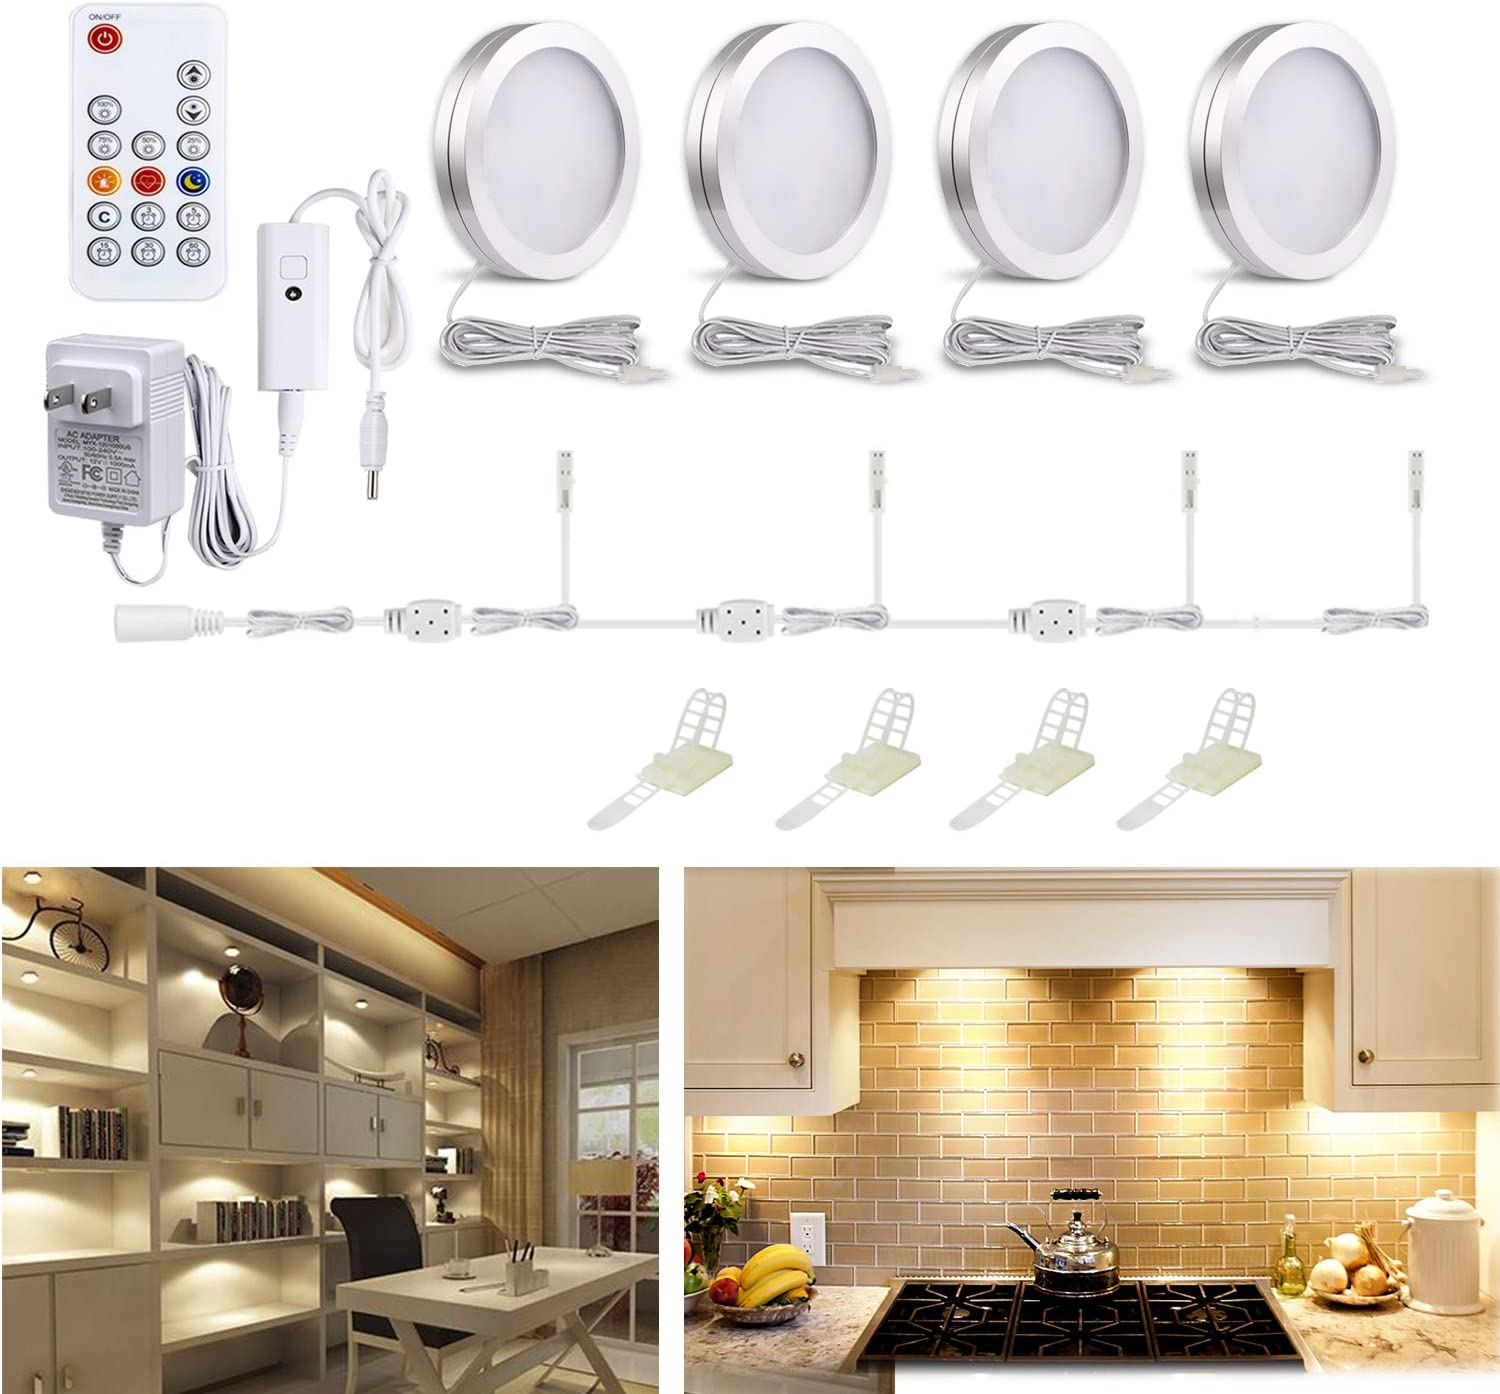 WOBANE LED Puck Lights, Wired Under Cabinet Lighting Kit with Remote, Dimmable Counter Lighting for Kitchen,Closet,Bookshelf,Shelf,700lm,3000K Warm White,Super Bright,Timing, Aluminum, Set of 4